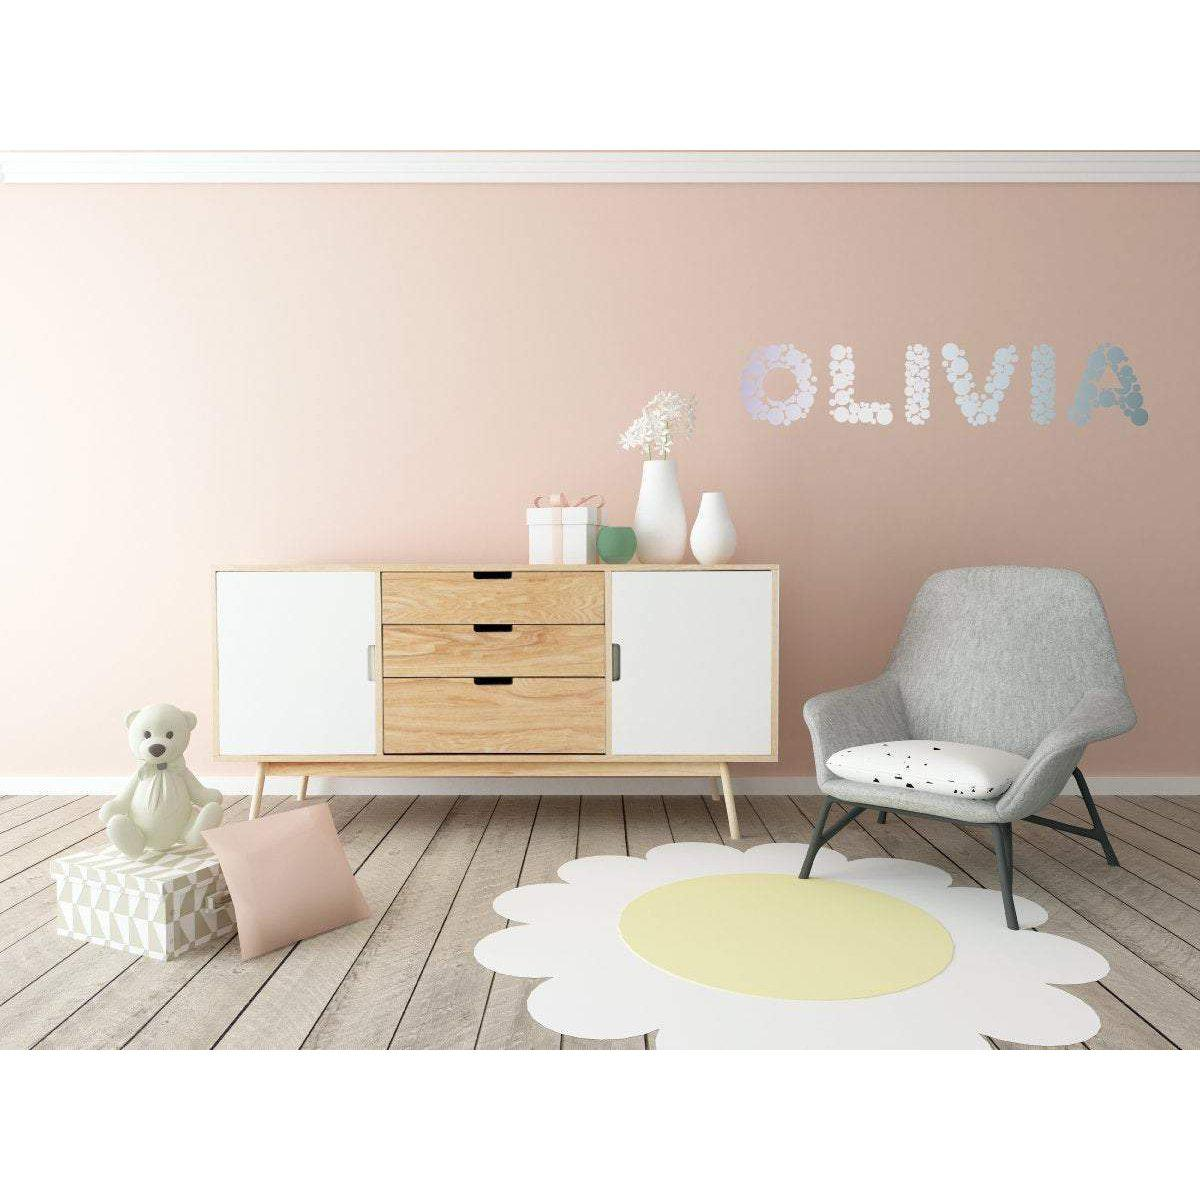 Silver Wall Decal, Personalised Decal, Personalised Art, Nursery Wall Sticker, Nursery Wall Decal, Silver Polka Dots, Polka Dot Stickers